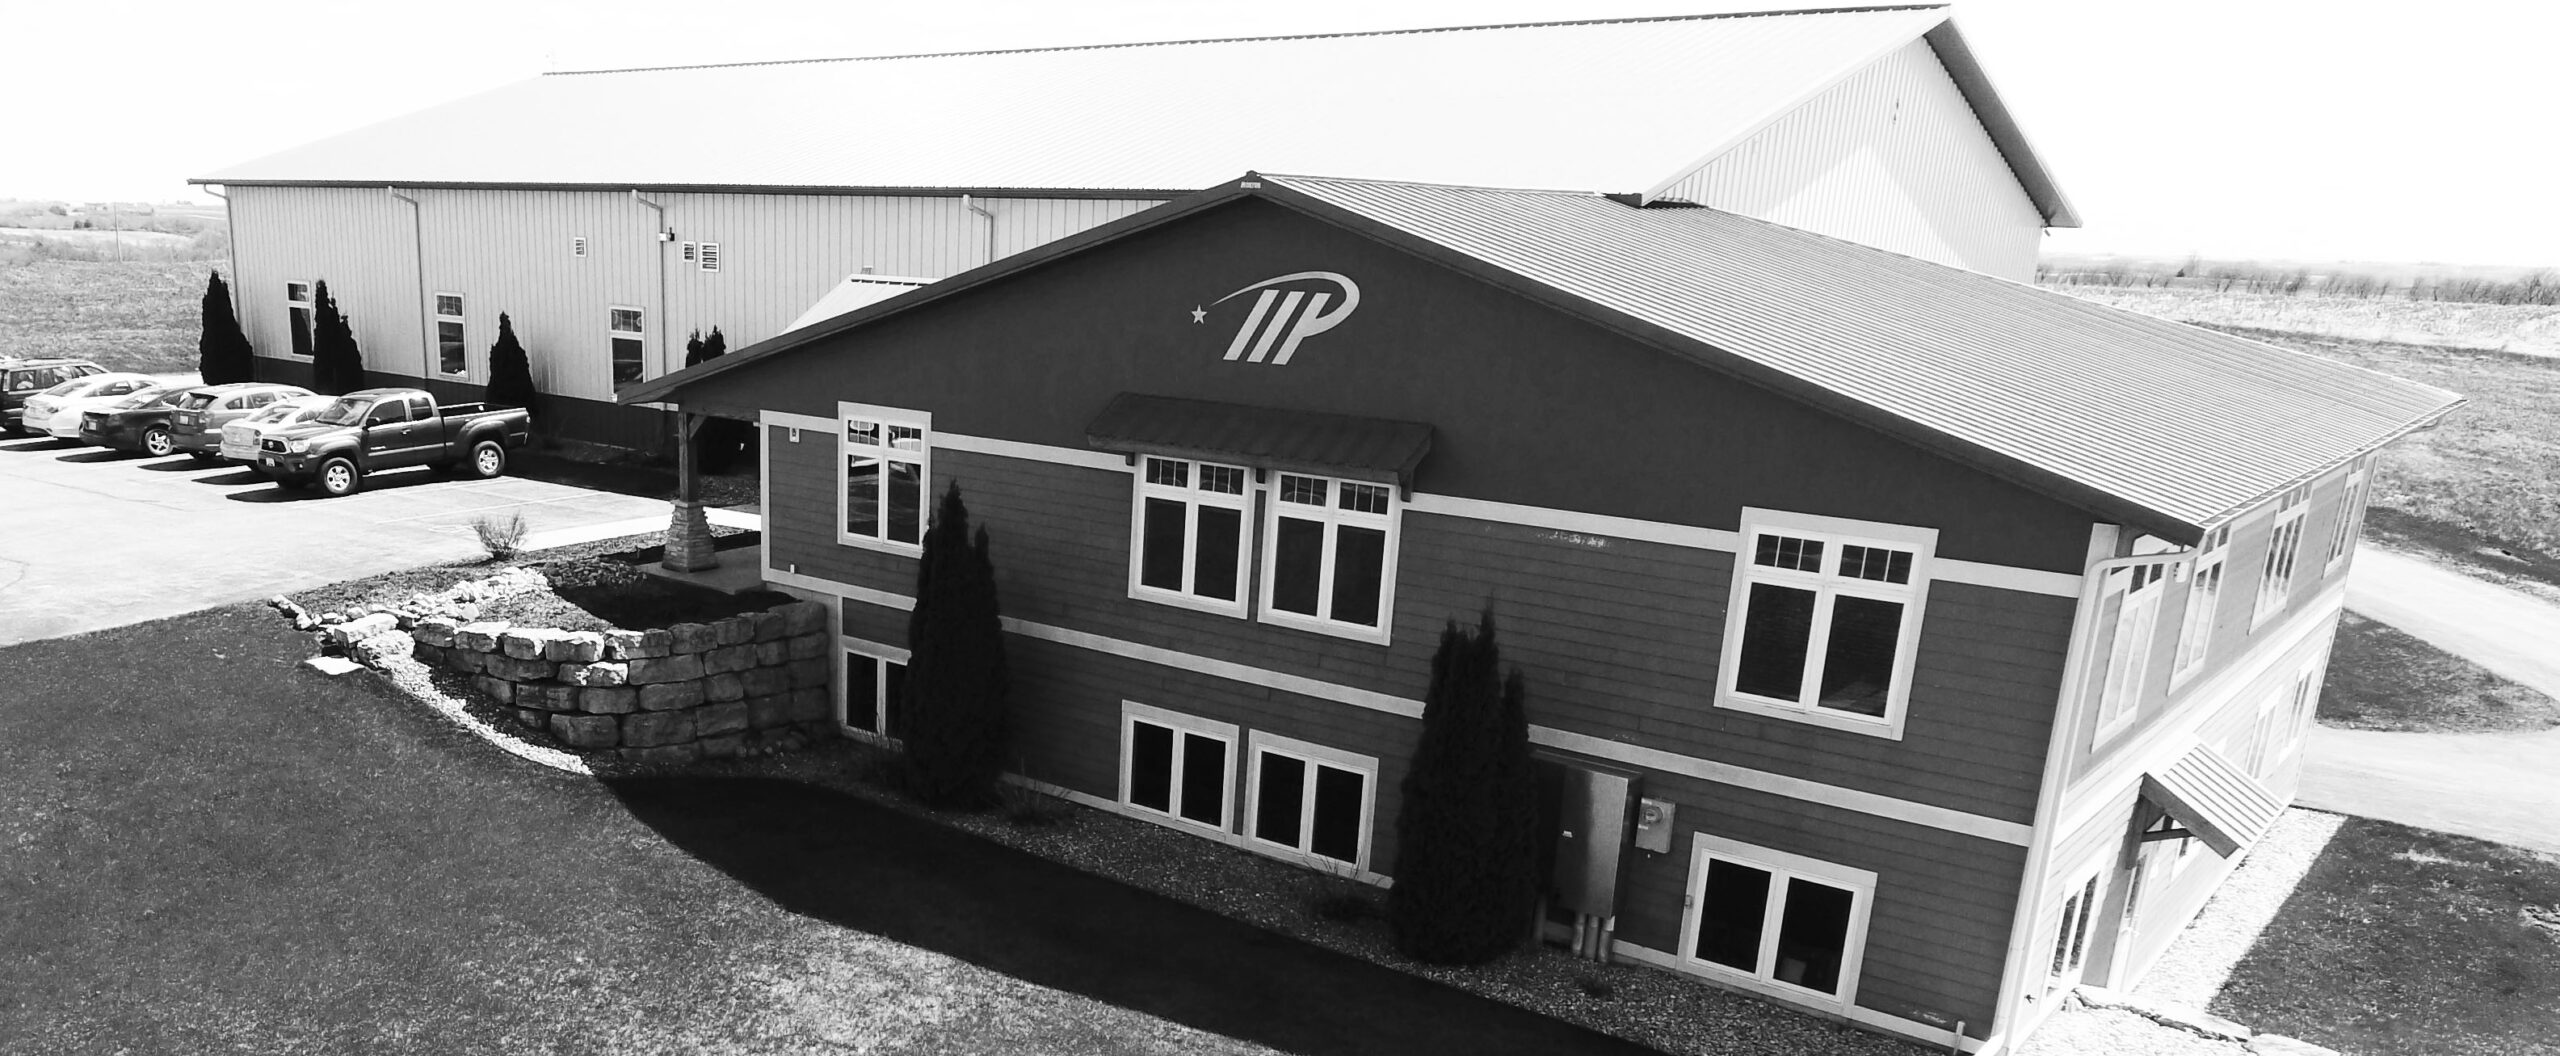 Midwest Prototyping Headquarters